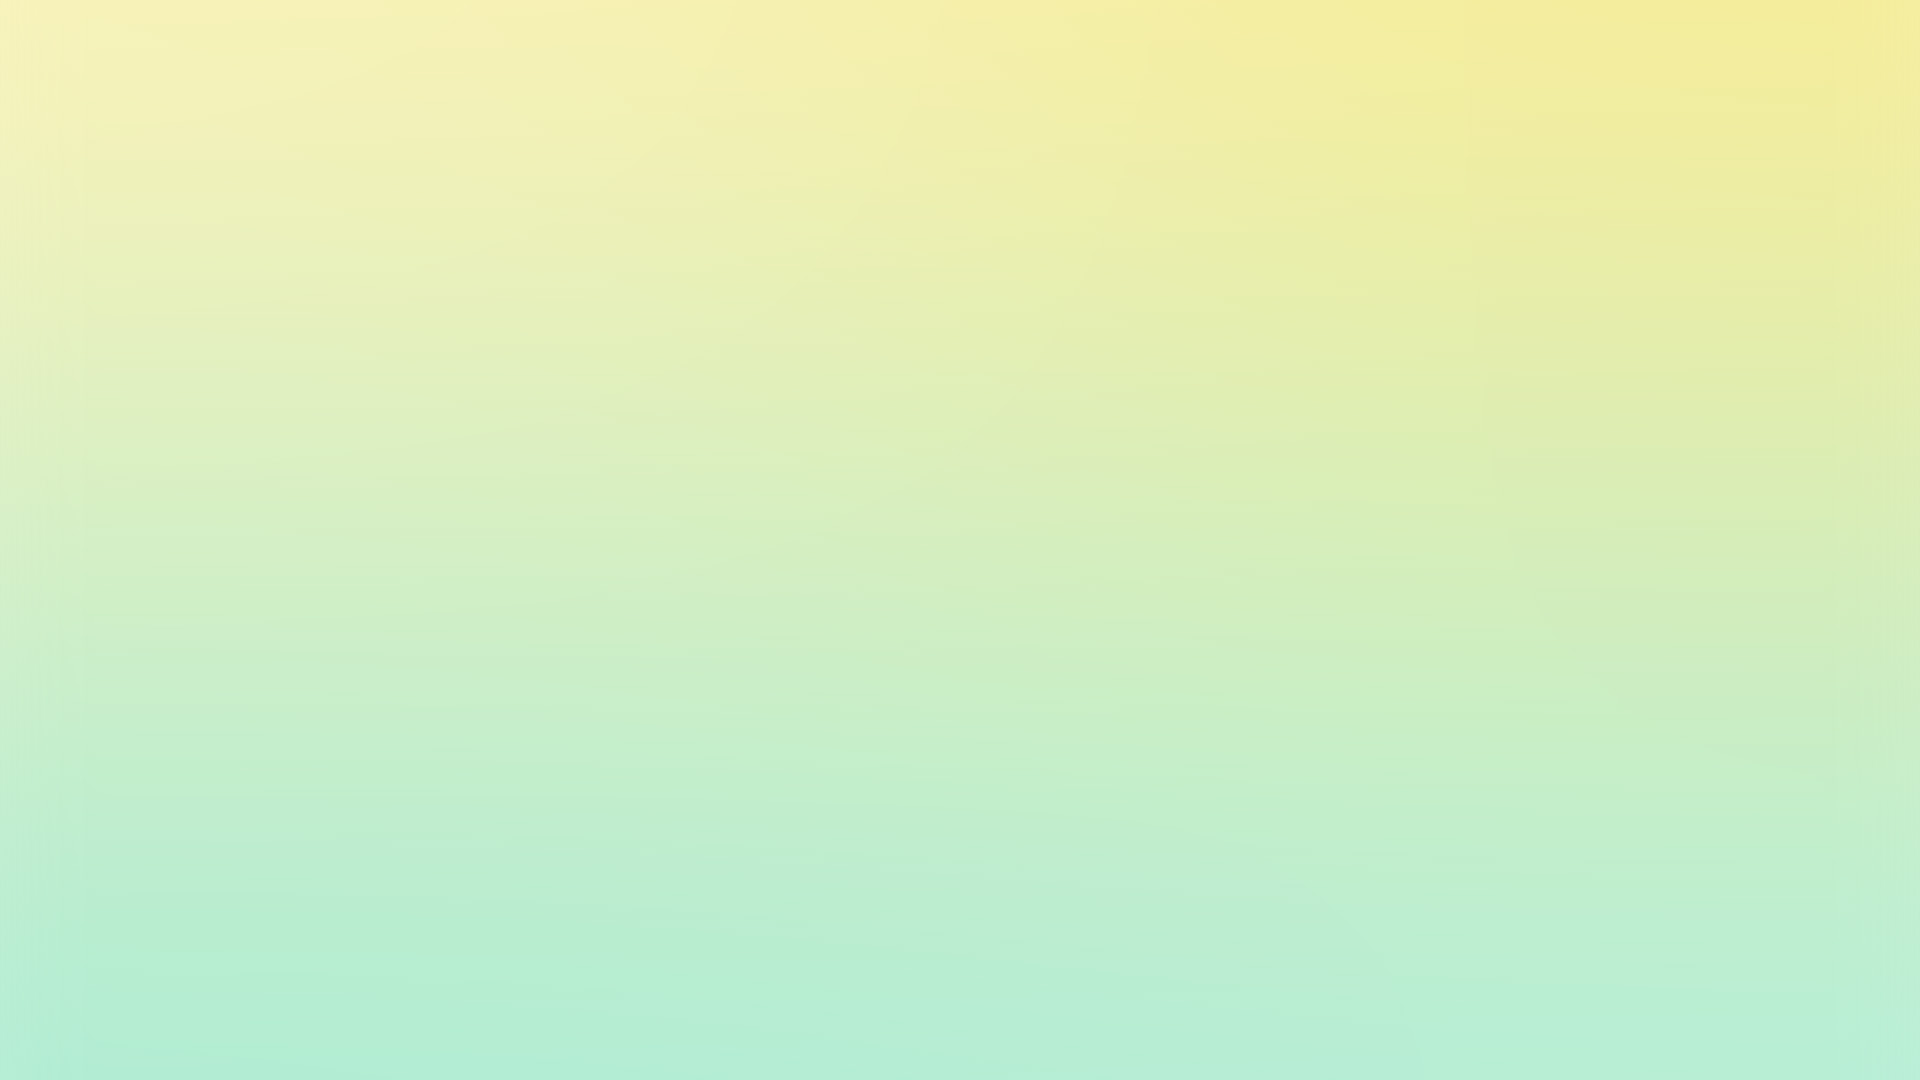 Fall Background Wallpaper Sl91 Yellow Green Pastel Blur Gradation Wallpaper